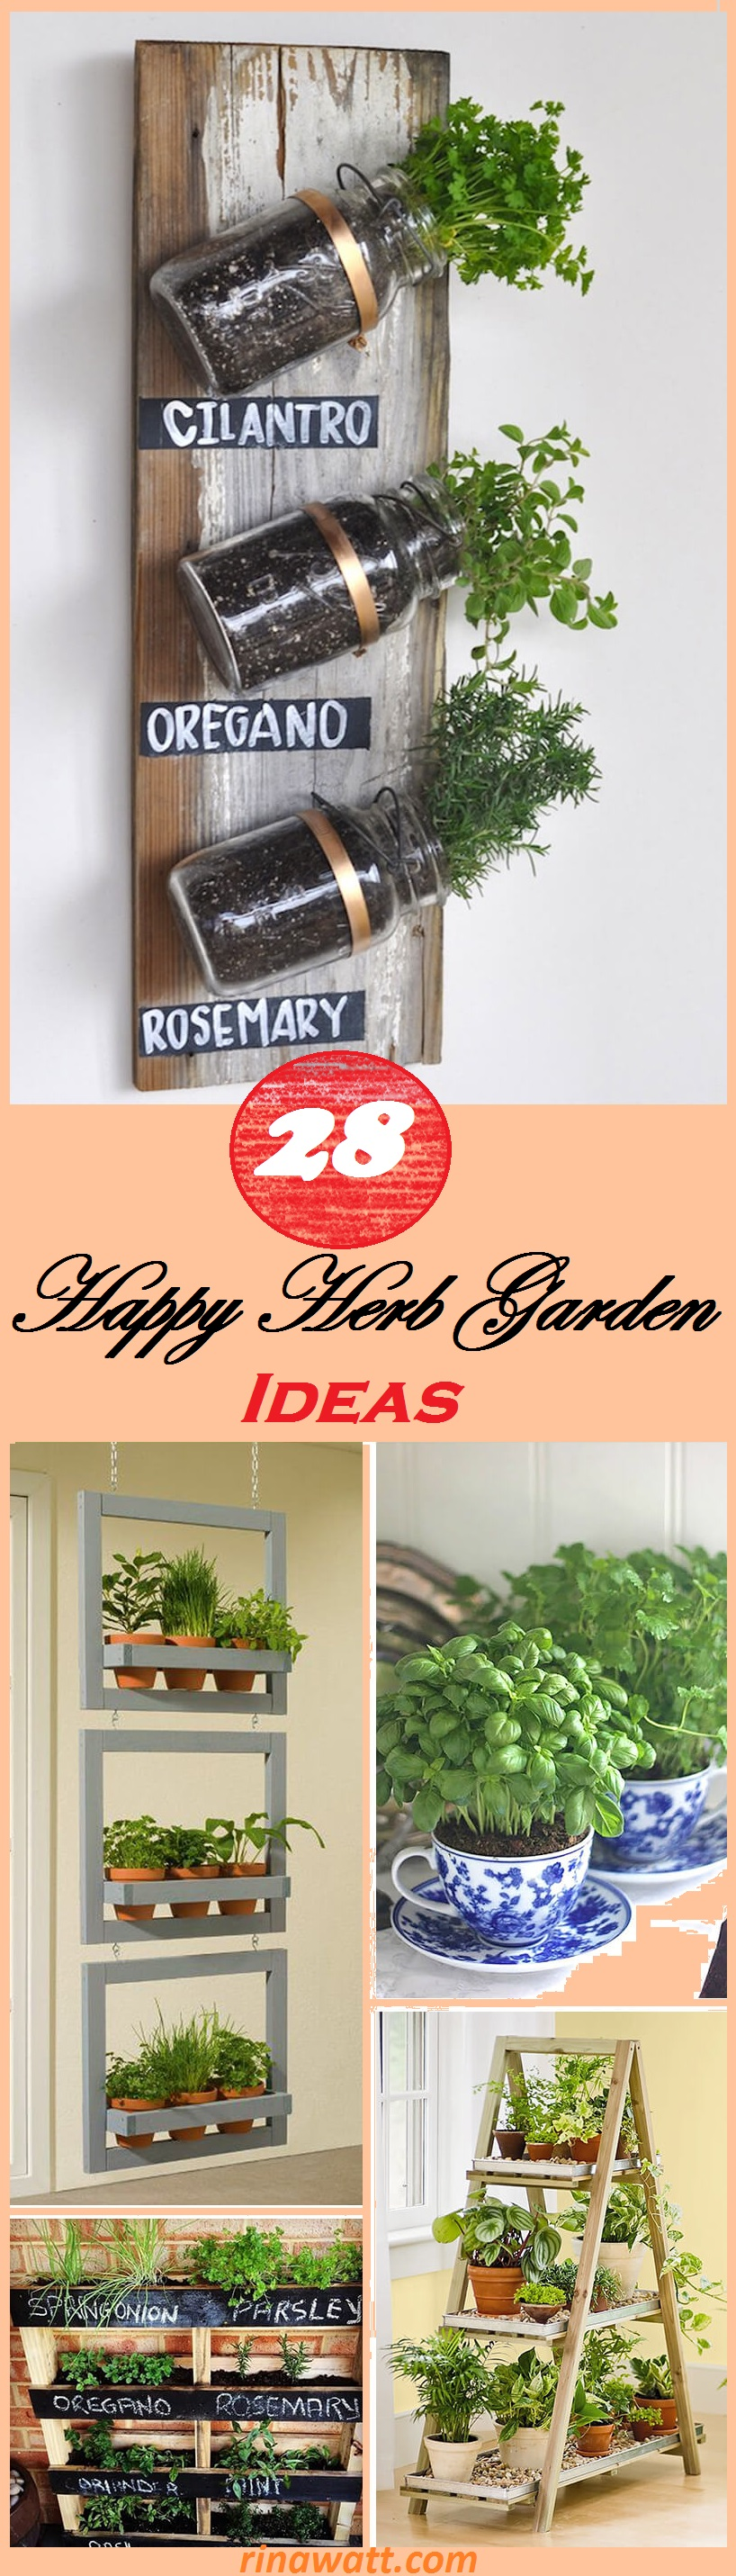 25 Creative Herb Garden Ideas For Indoors And Outdoors Rina